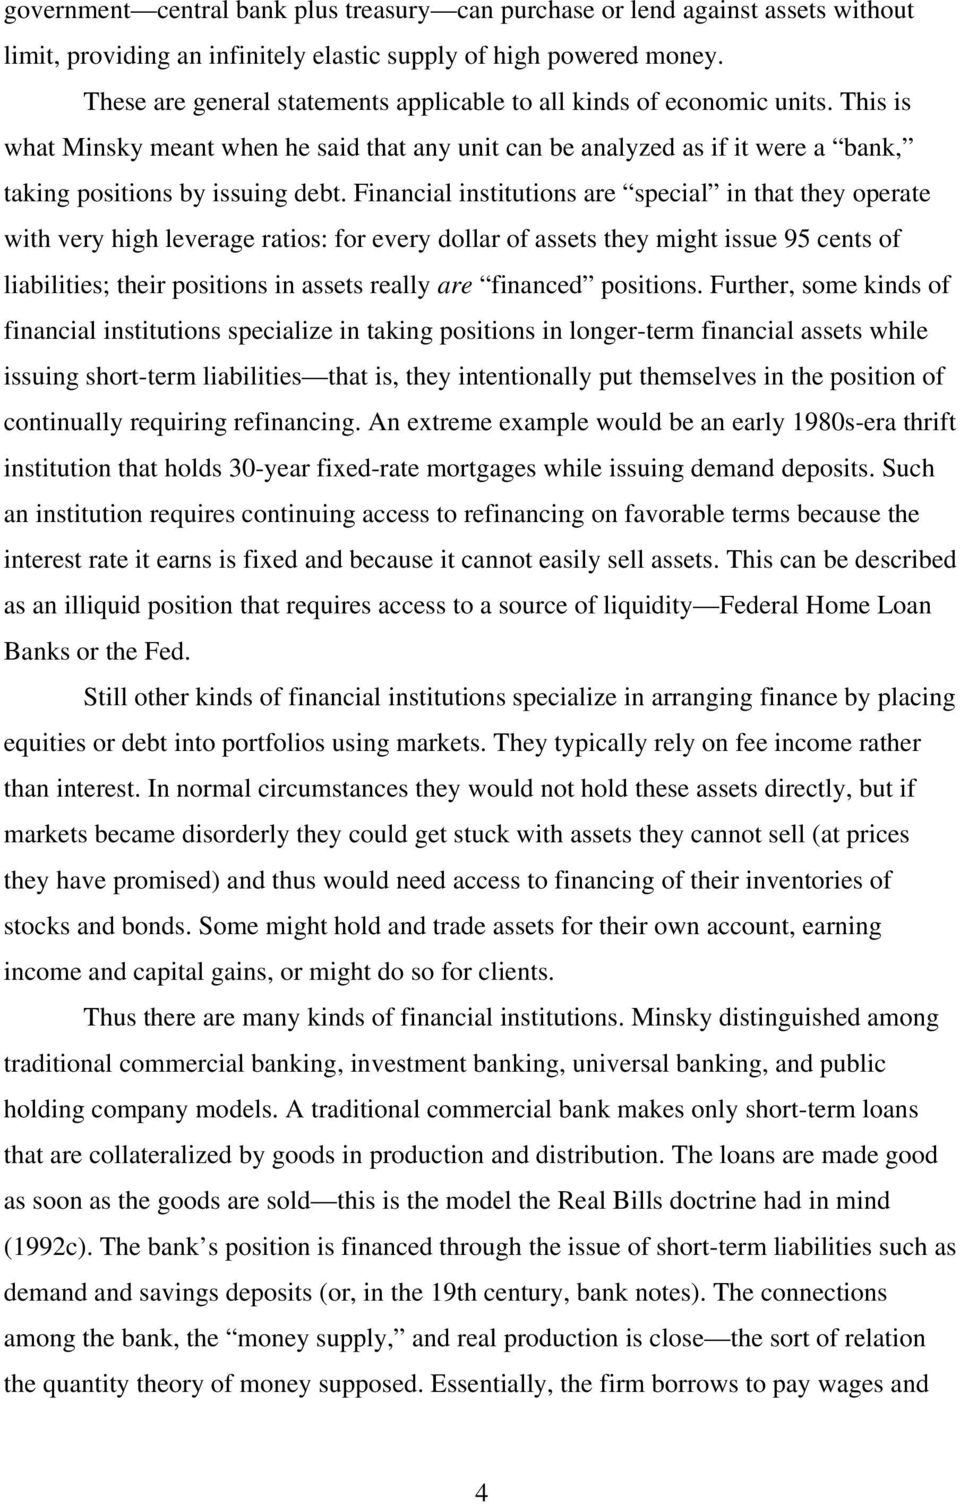 Financial institutions are special in that they operate with very high leverage ratios: for every dollar of assets they might issue 95 cents of liabilities; their positions in assets really are